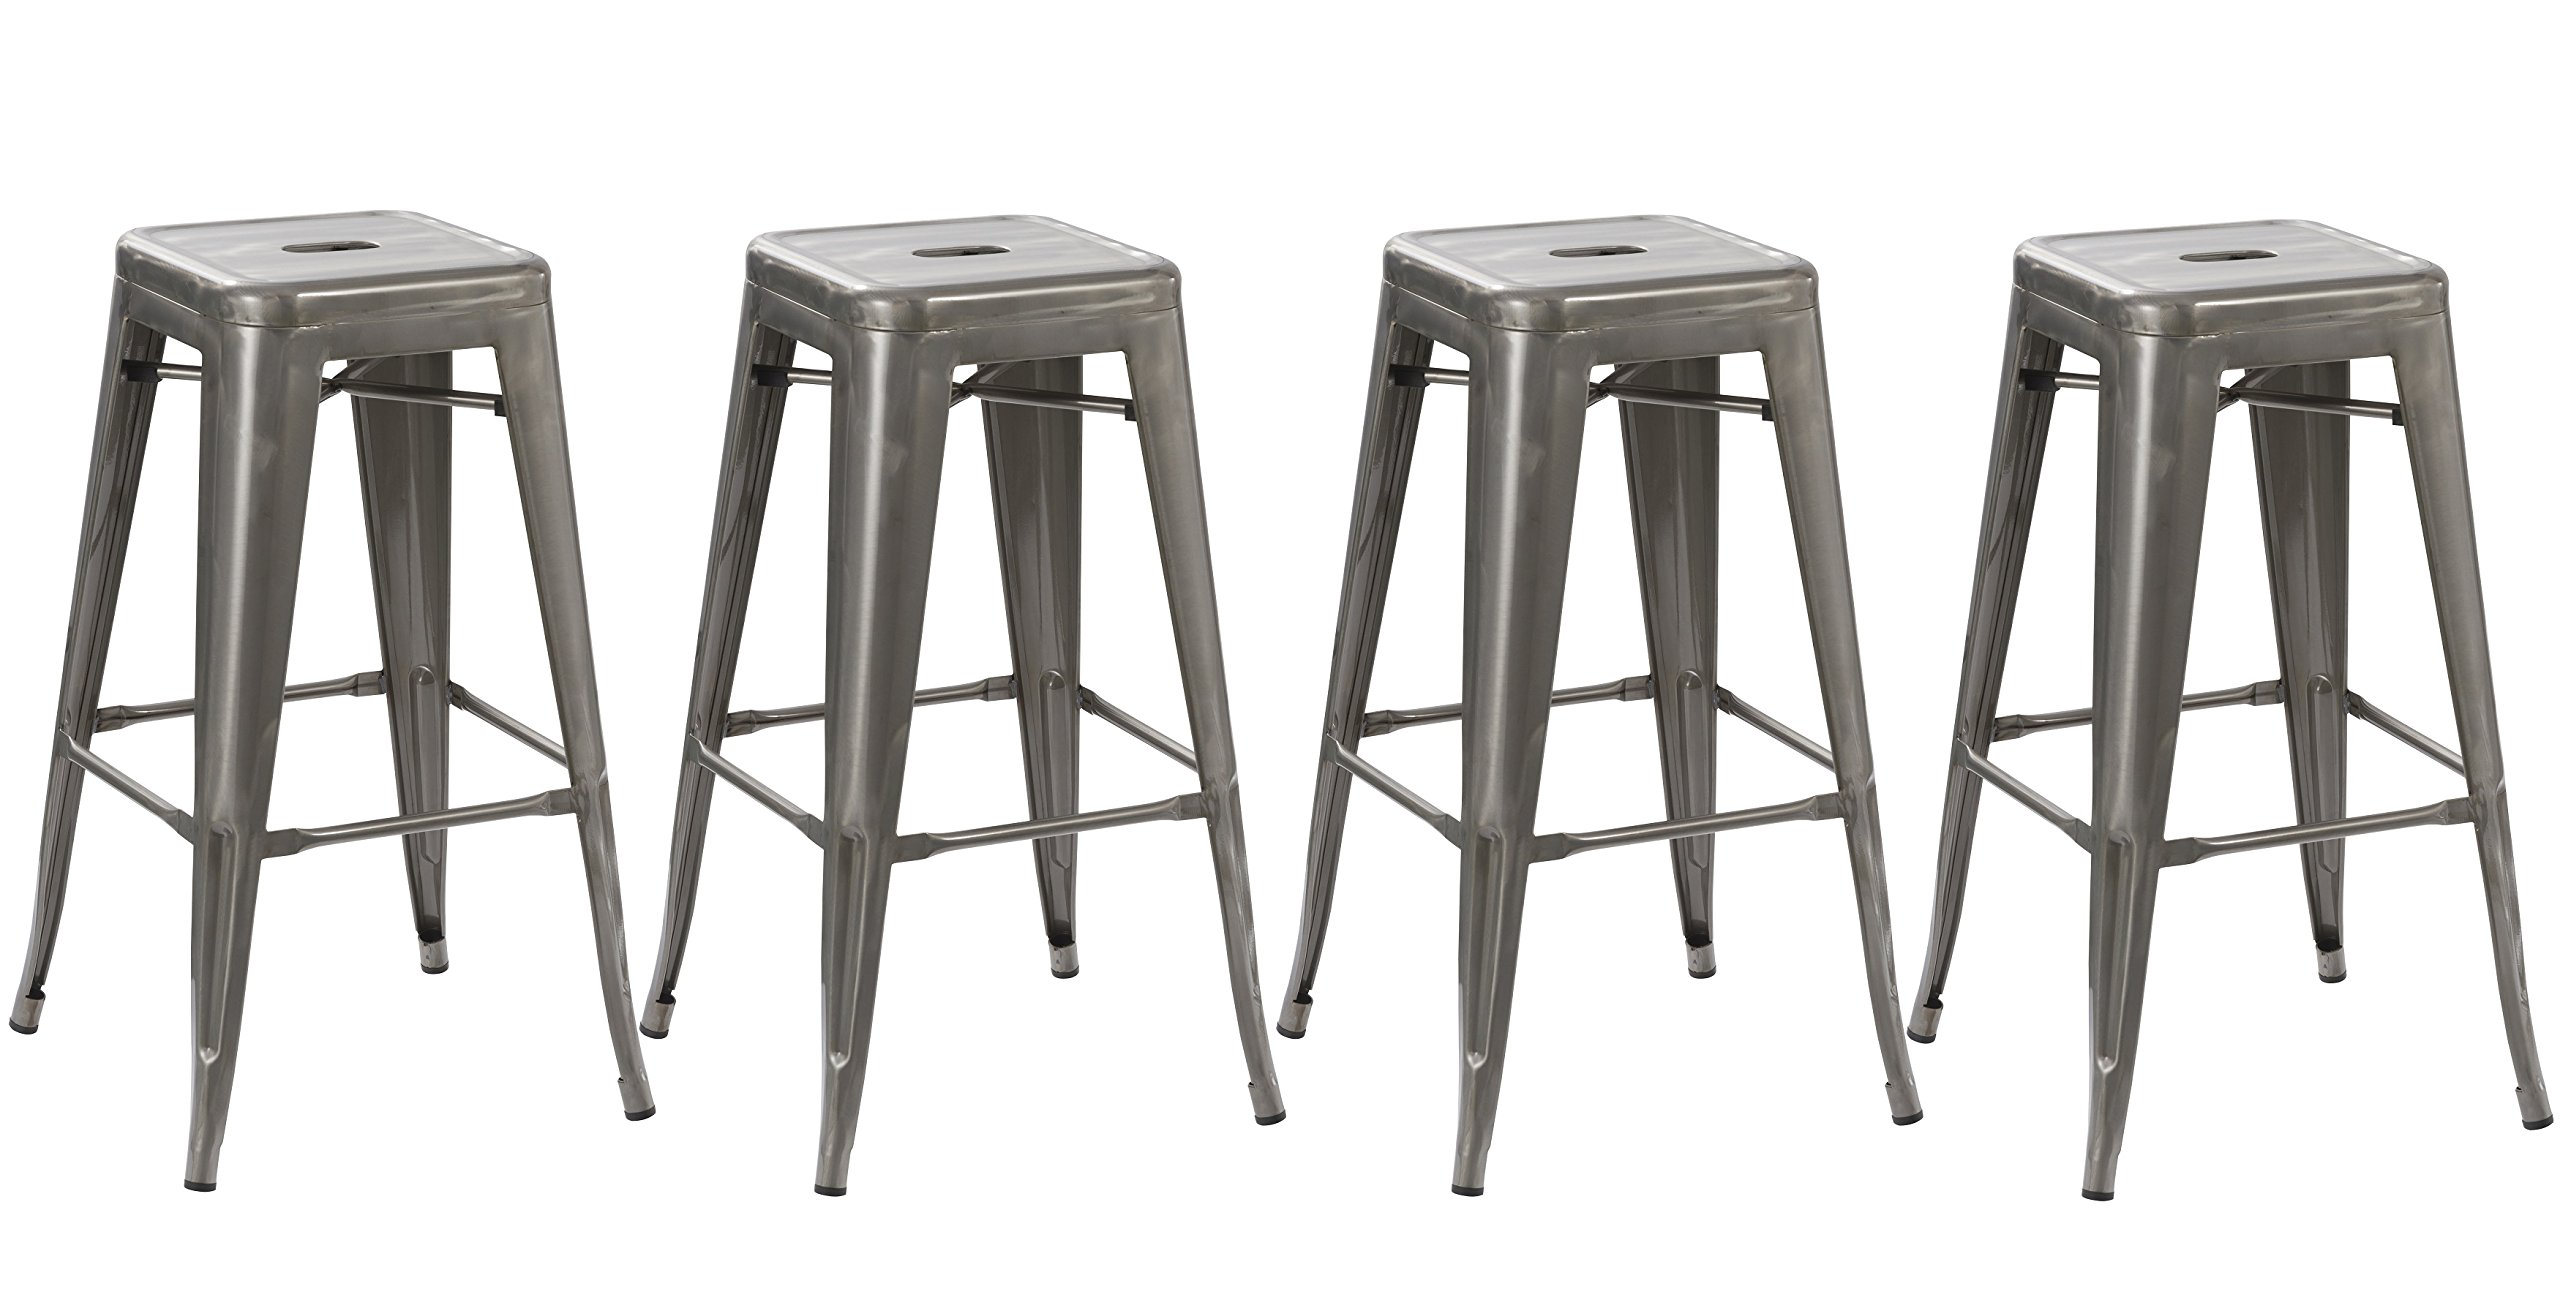 BTEXPERT Solid Steel Stacking Industrial Distressed Rustic Metal Tabouret Dining Room Modern Steel Barstool, 30'' L, Set of 4 by BTEXPERT